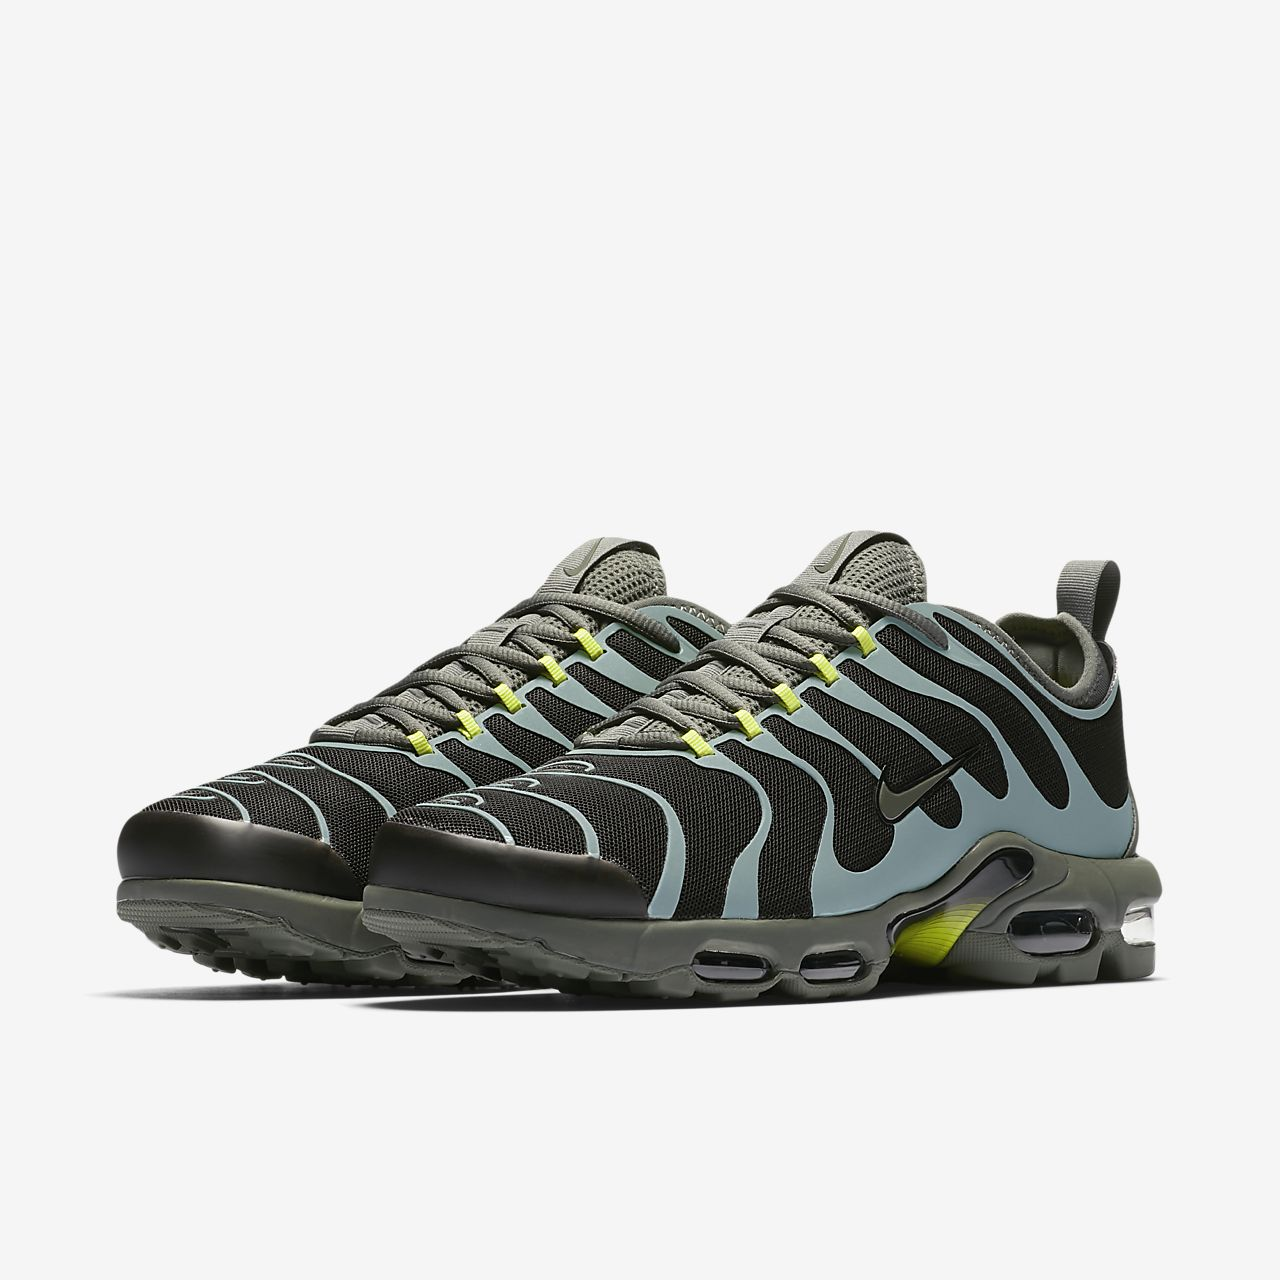 ... Nike Air Max Plus Tn Ultra Men's Shoe